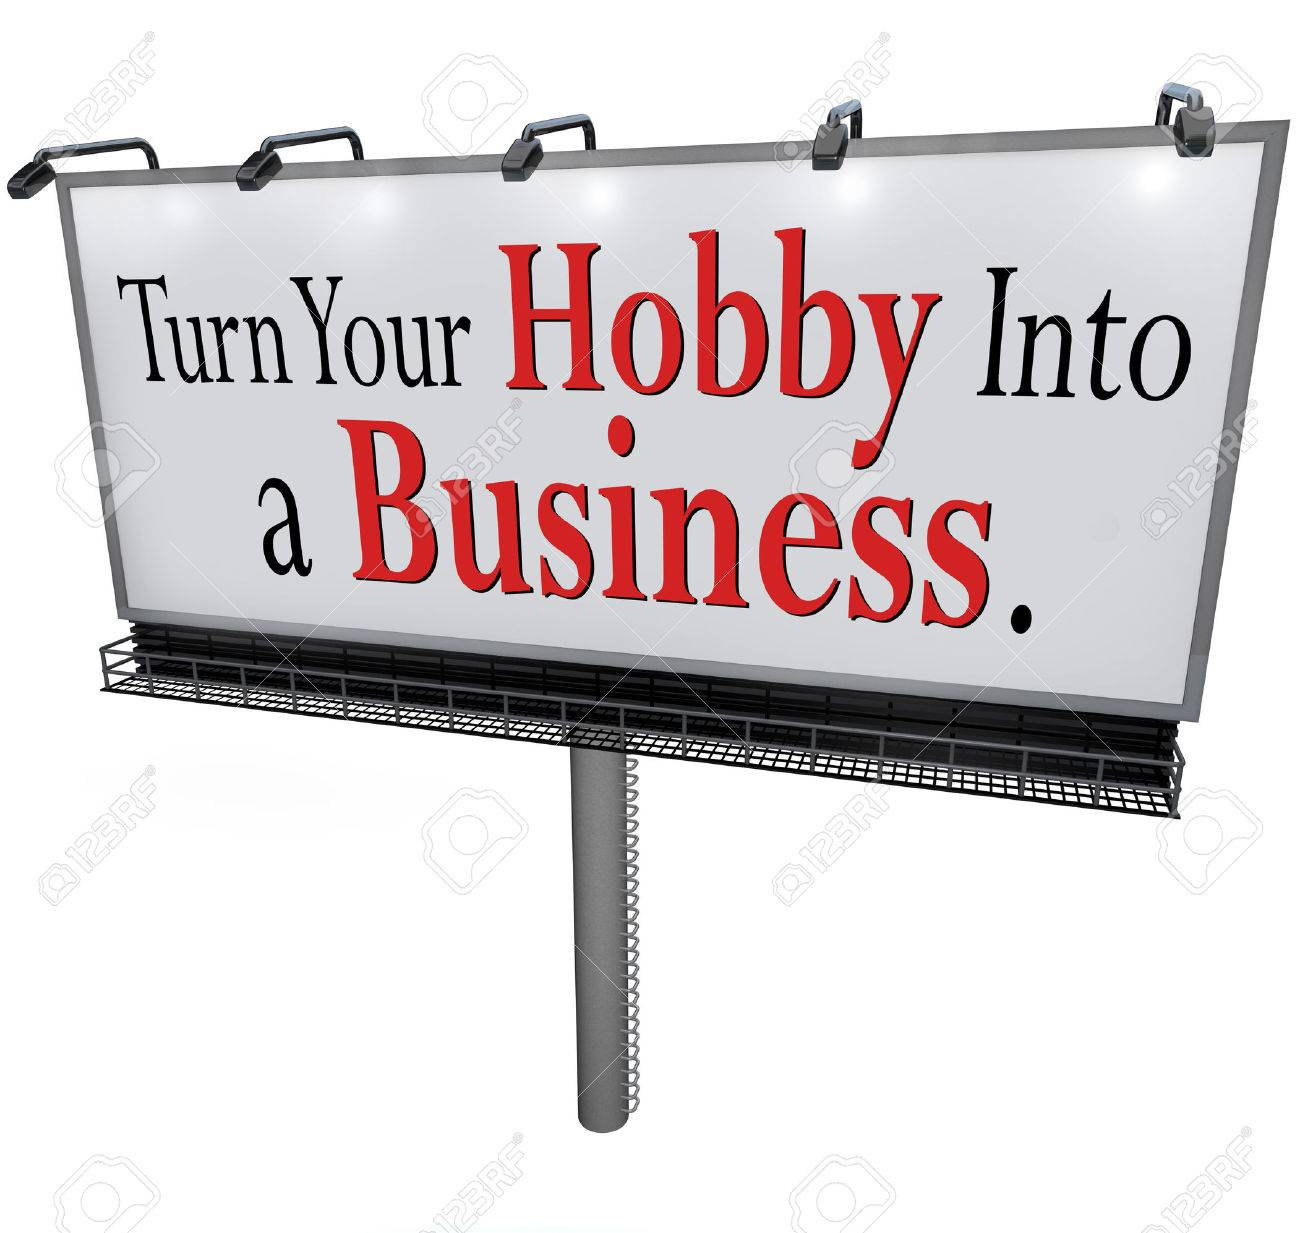 turn your hobby into a business words on a d billboard or sign stock photo turn your hobby into a business words on a 3d billboard or sign encouraging you to start a new company job or career